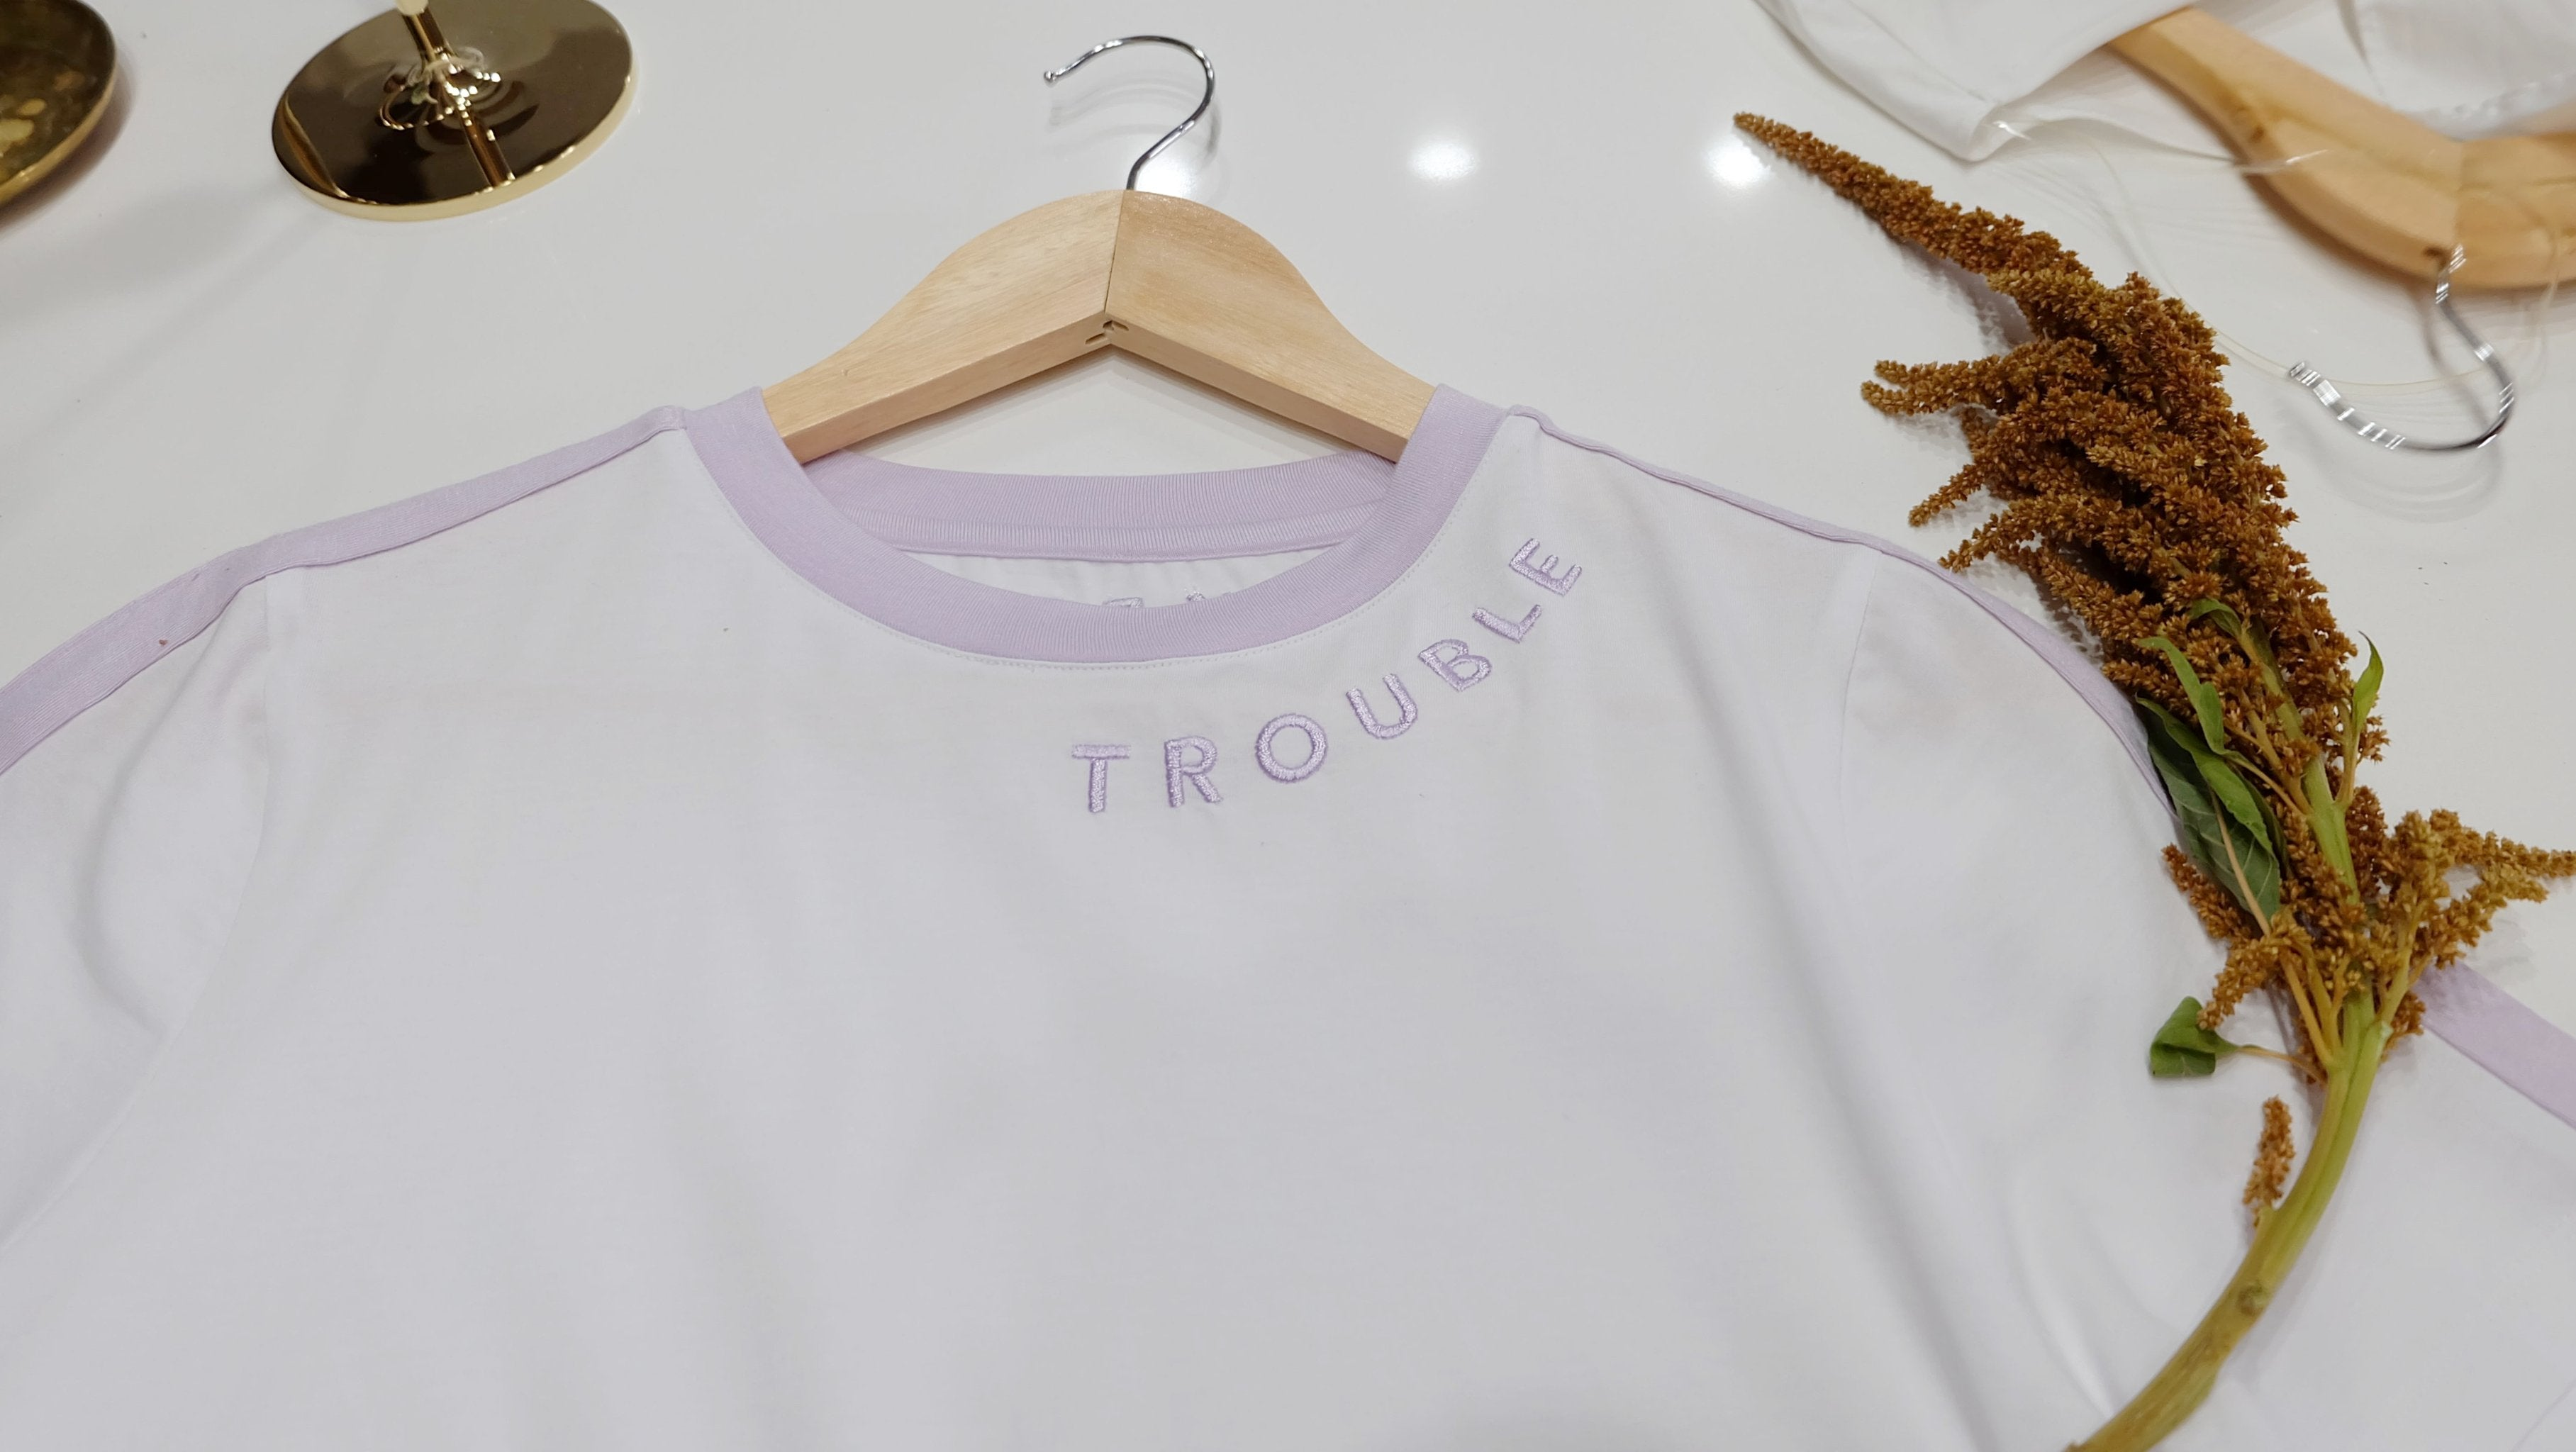 Troublemaker Tee - THEMAKE